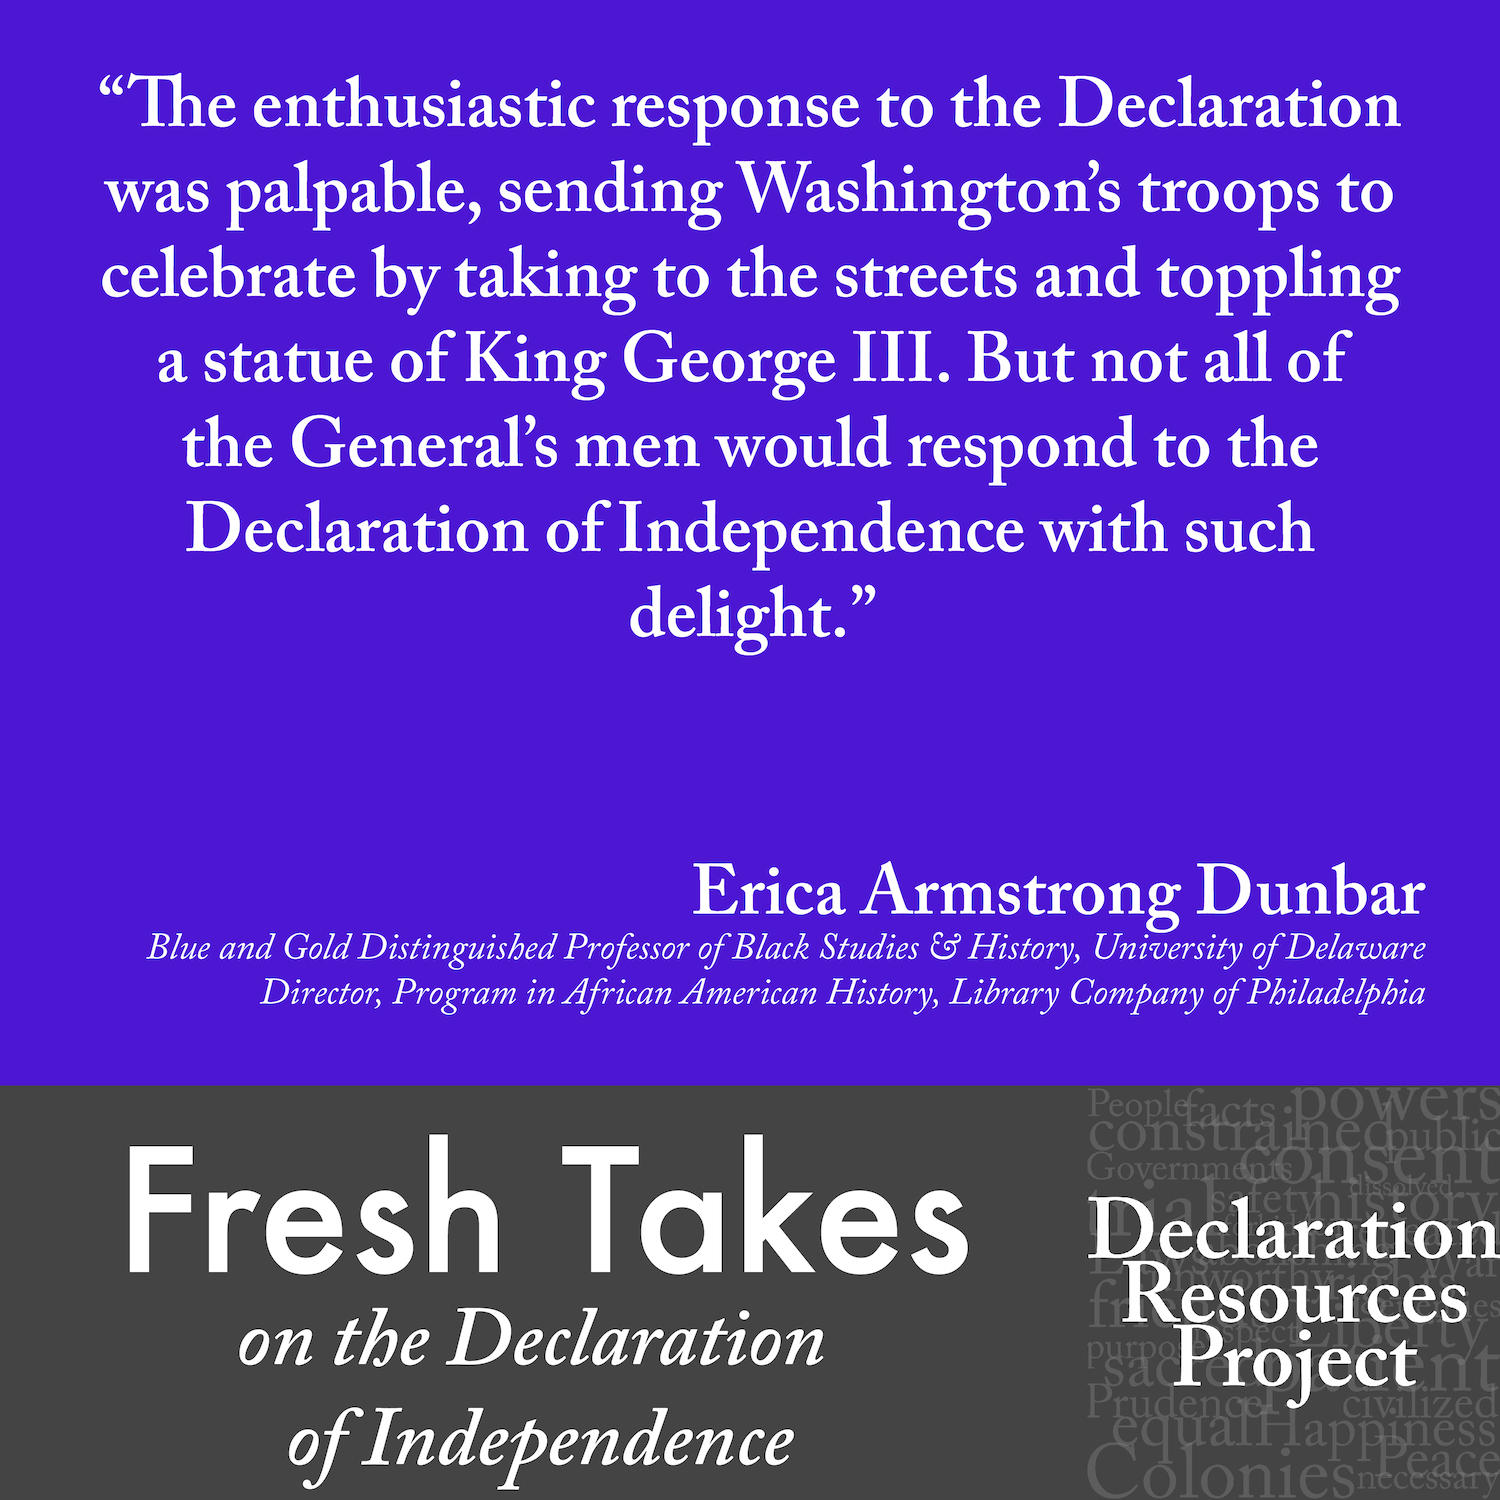 Erica Armstrong Dunbar's Fresh Take on the Declaration of Independence